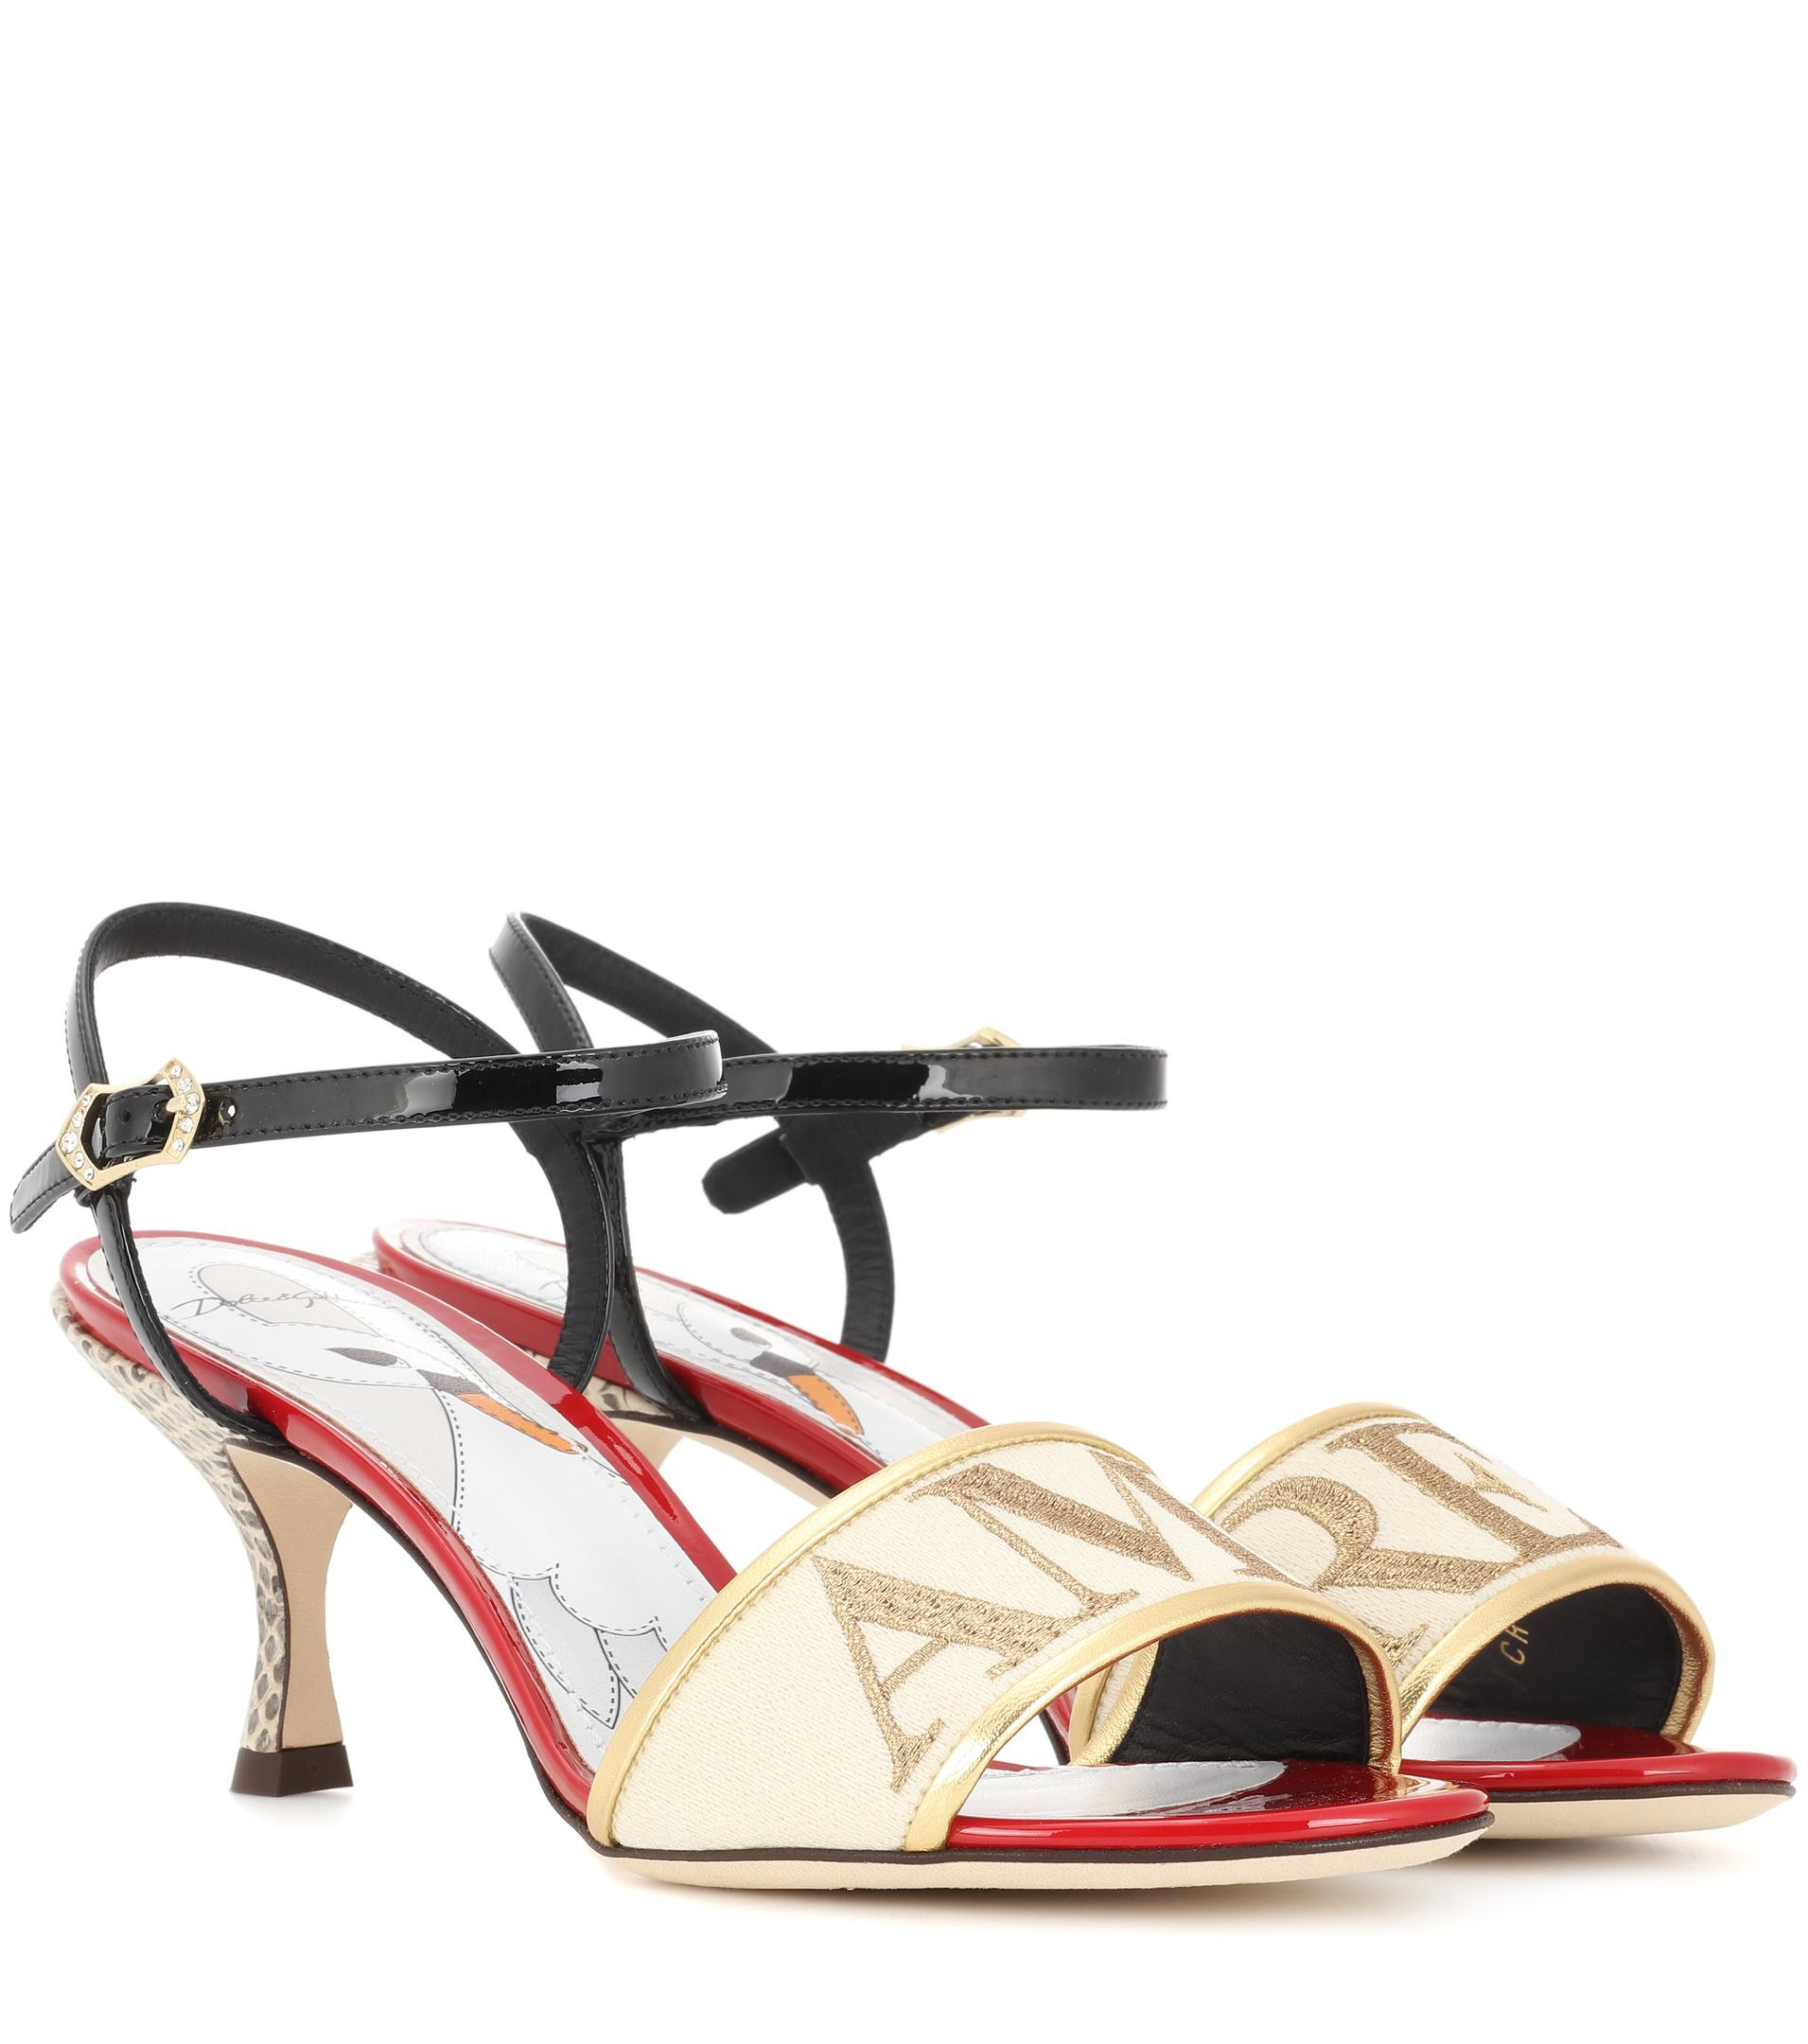 Dolce & Gabbana Amore leather and snakeskin sandals yR3cBNto